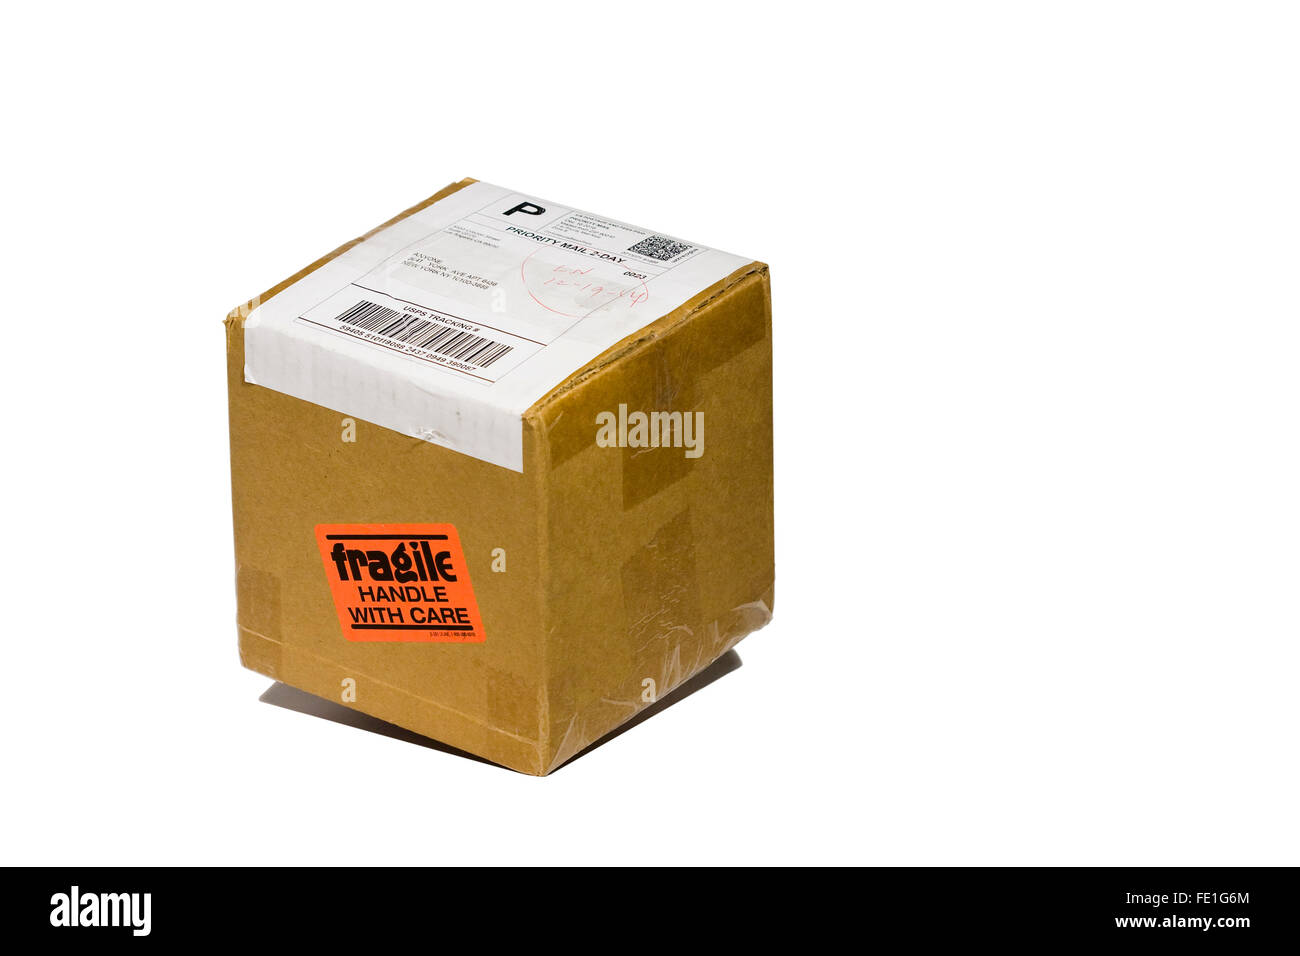 Cut Out. Falling Cardboard Box. Fragile Handle With Care Sticker on box being sent by US Postal Service Priority - Stock Image